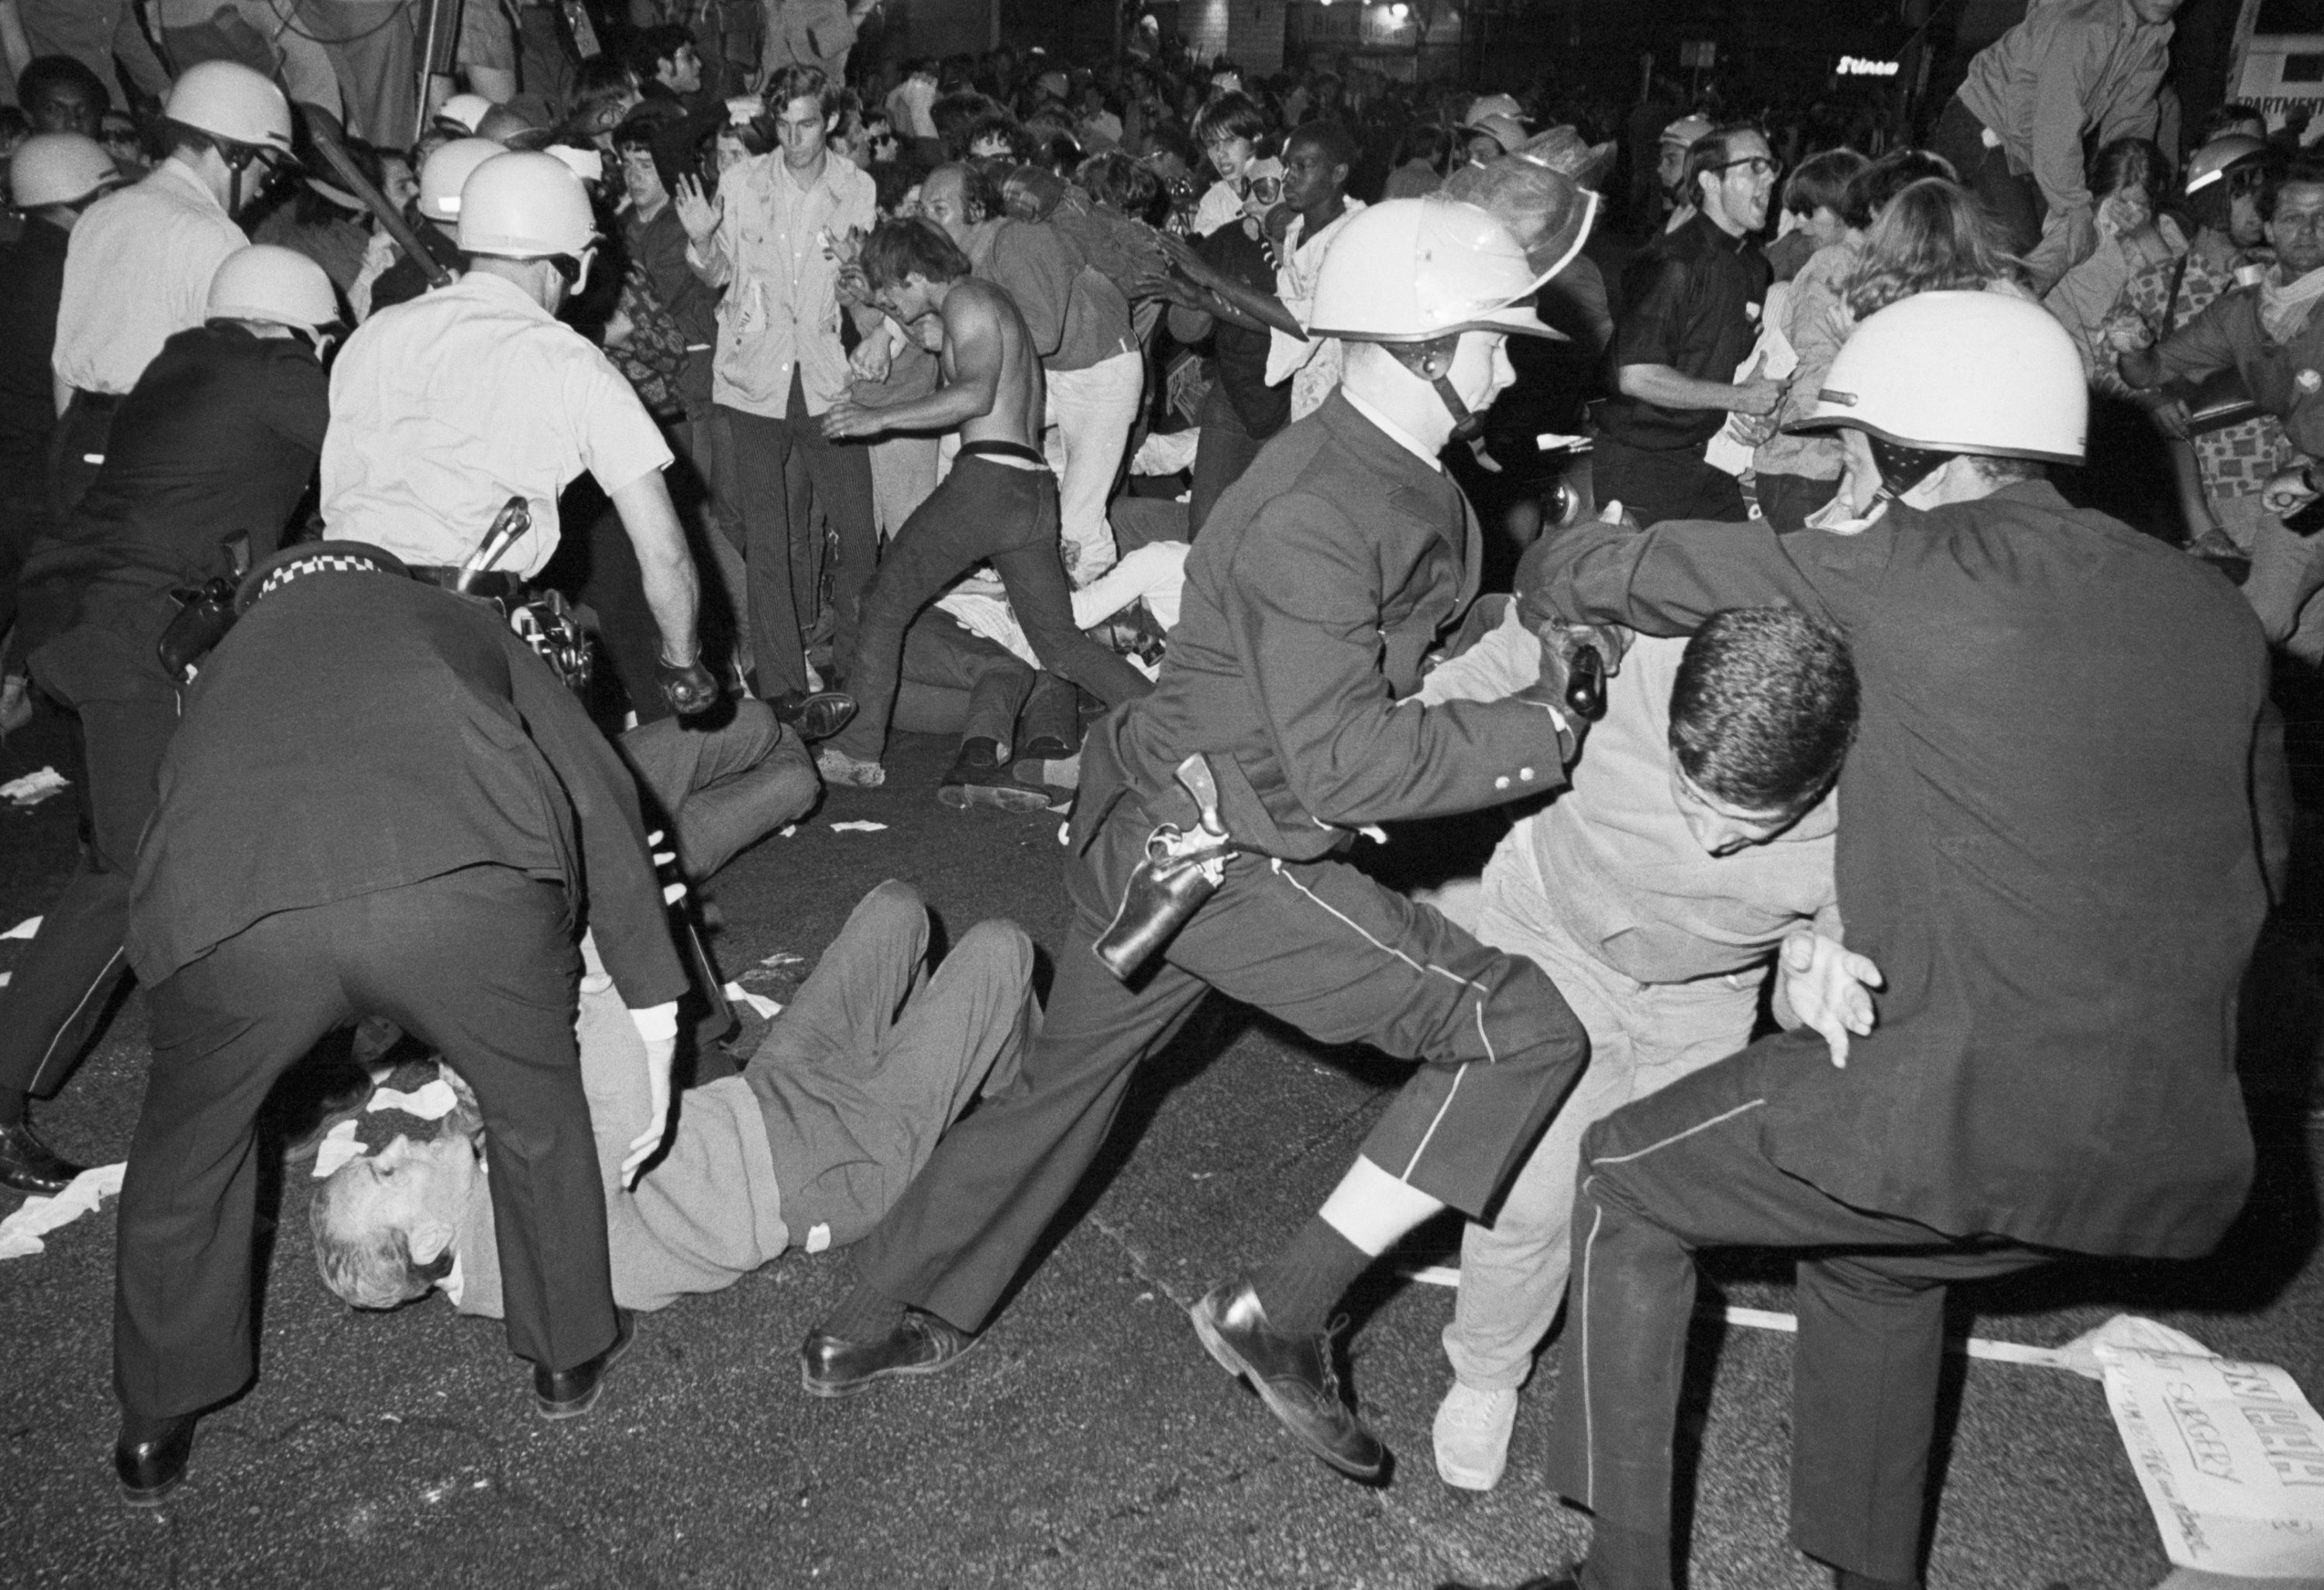 Police and protesters in Chicago in 1968